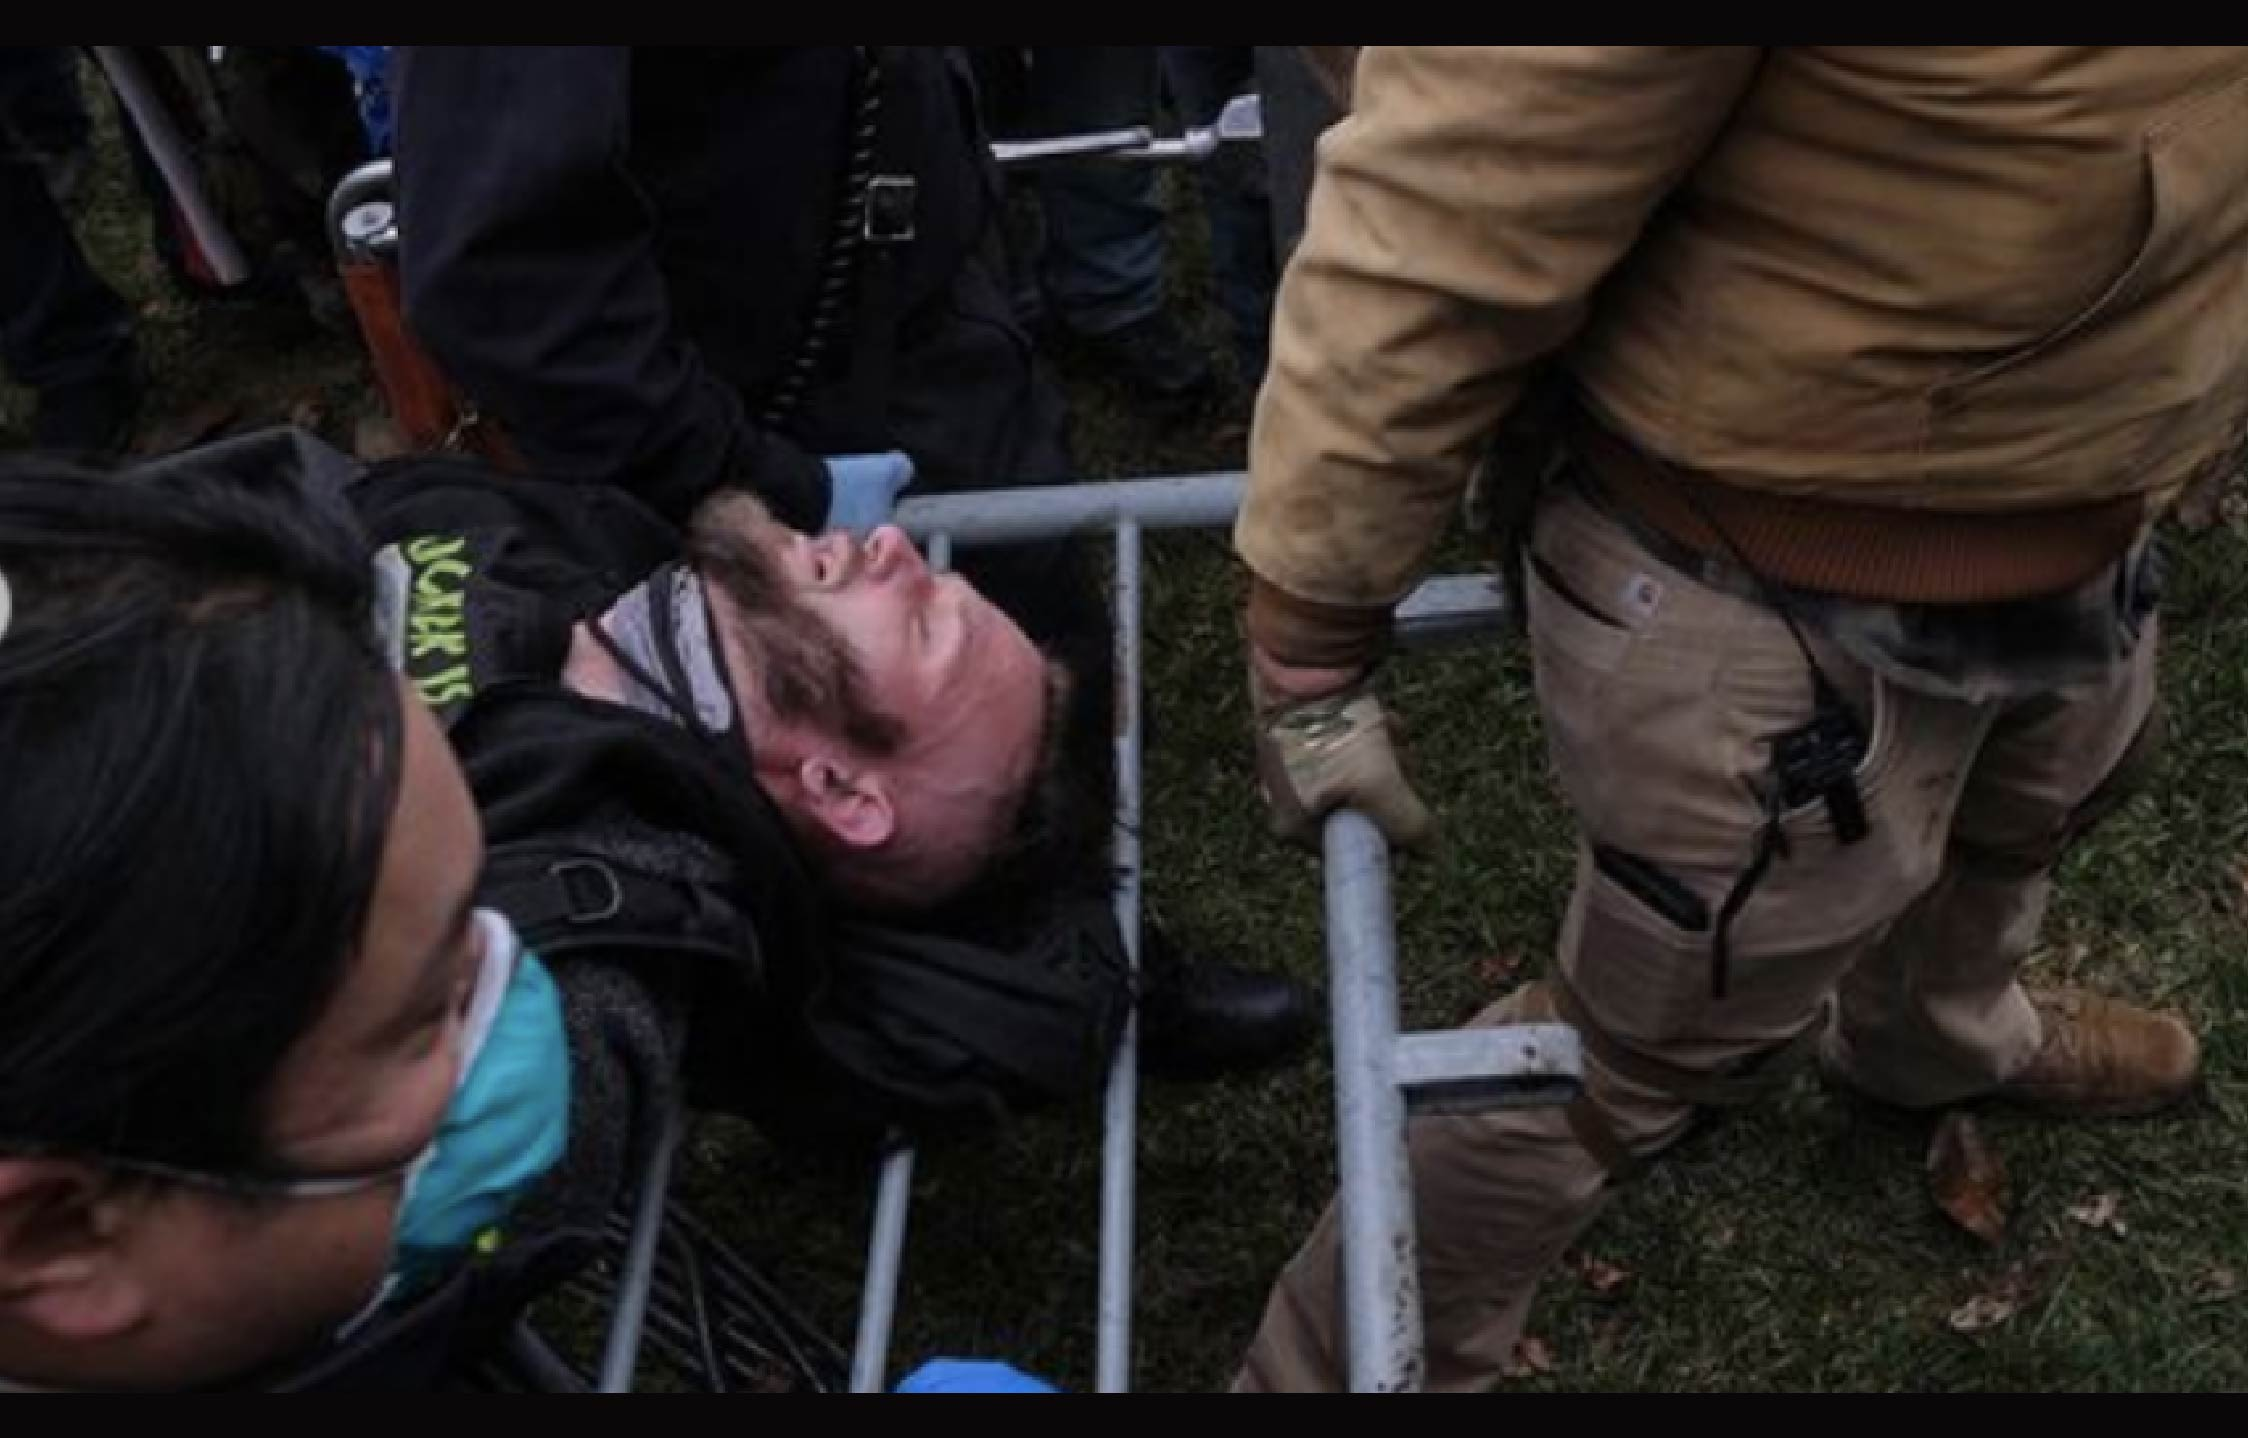 [VIDEO] Trump Supporters Examine New Jan 6 Clip and Have a Theory About Injured Man We've Never Seen Before